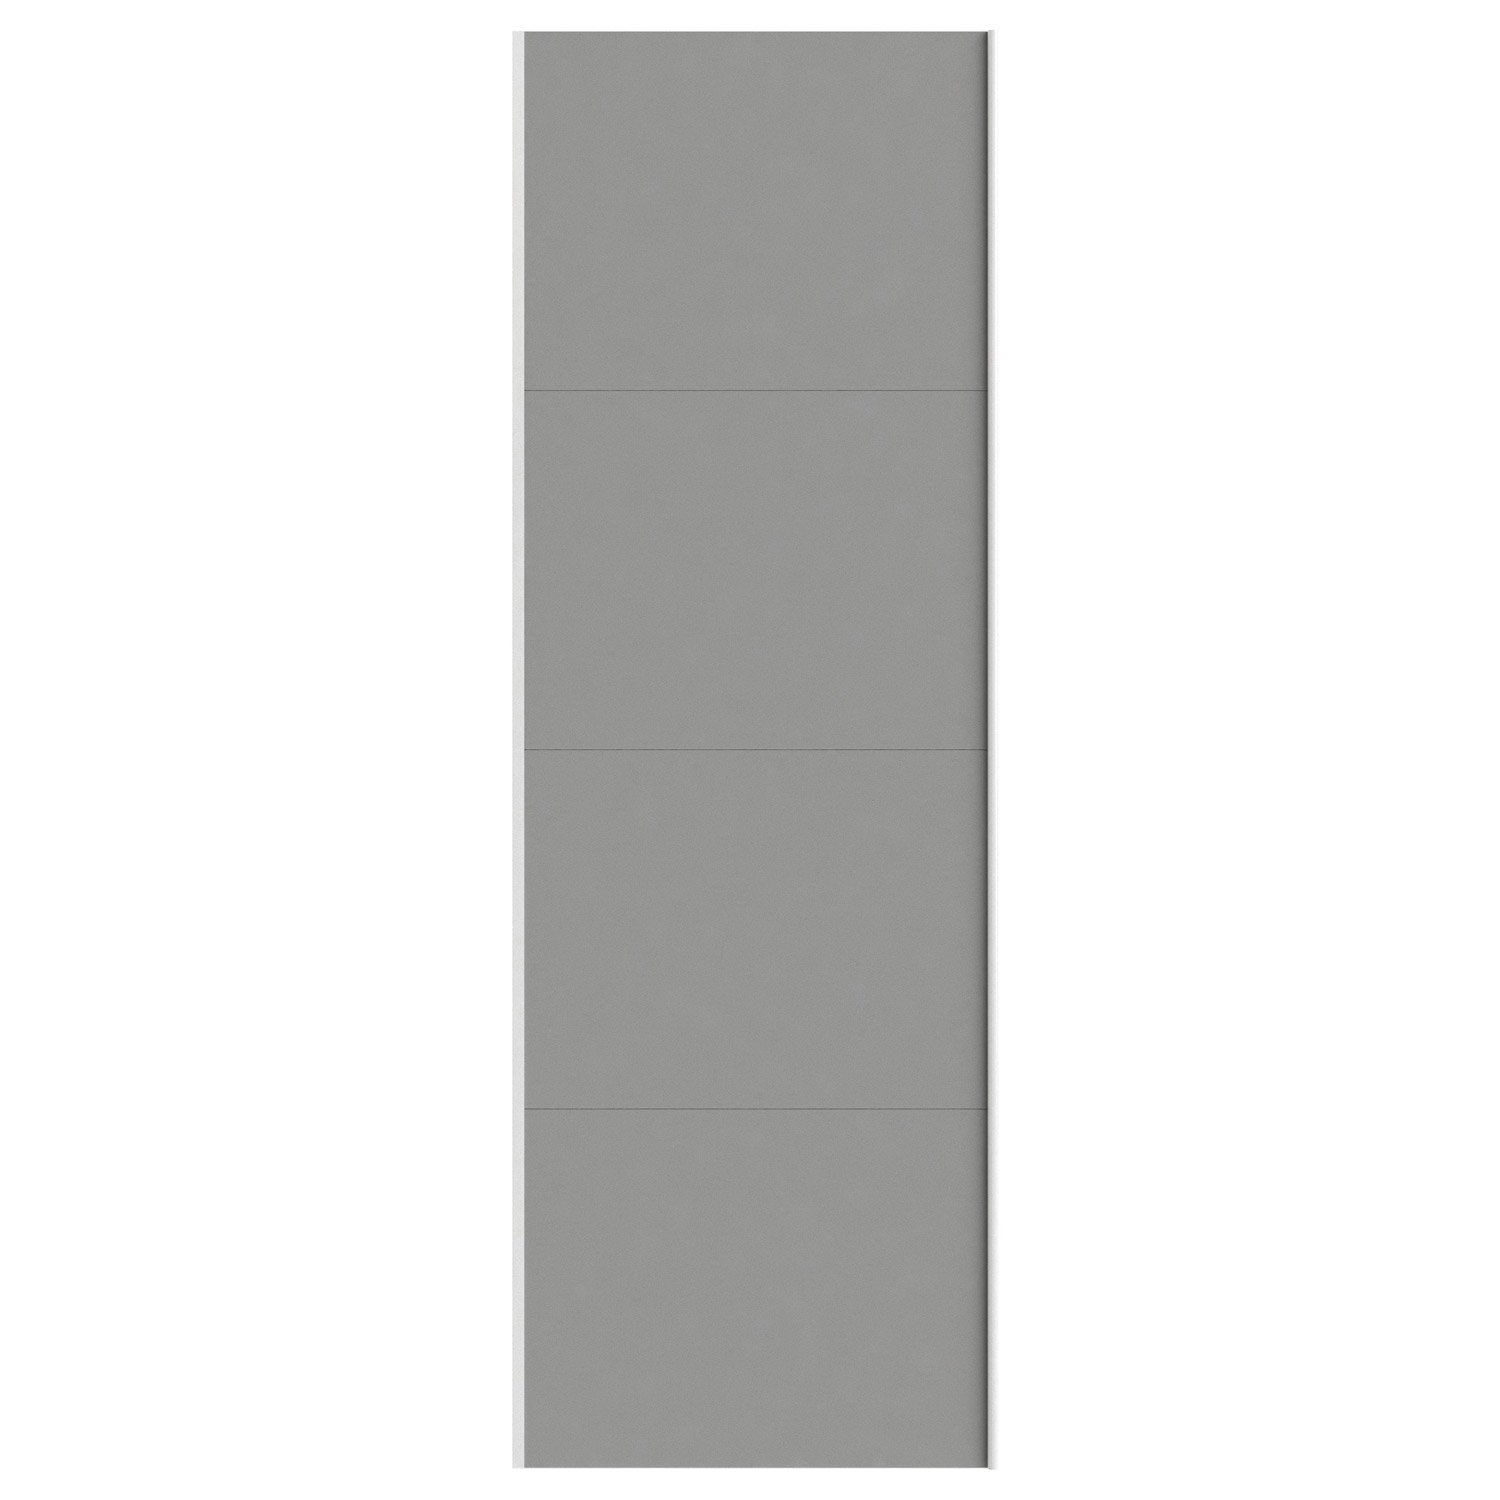 Portes coulissantes spaceo home 240 x 80 x 1 6 cm for Porte coulissante 240 cm hauteur